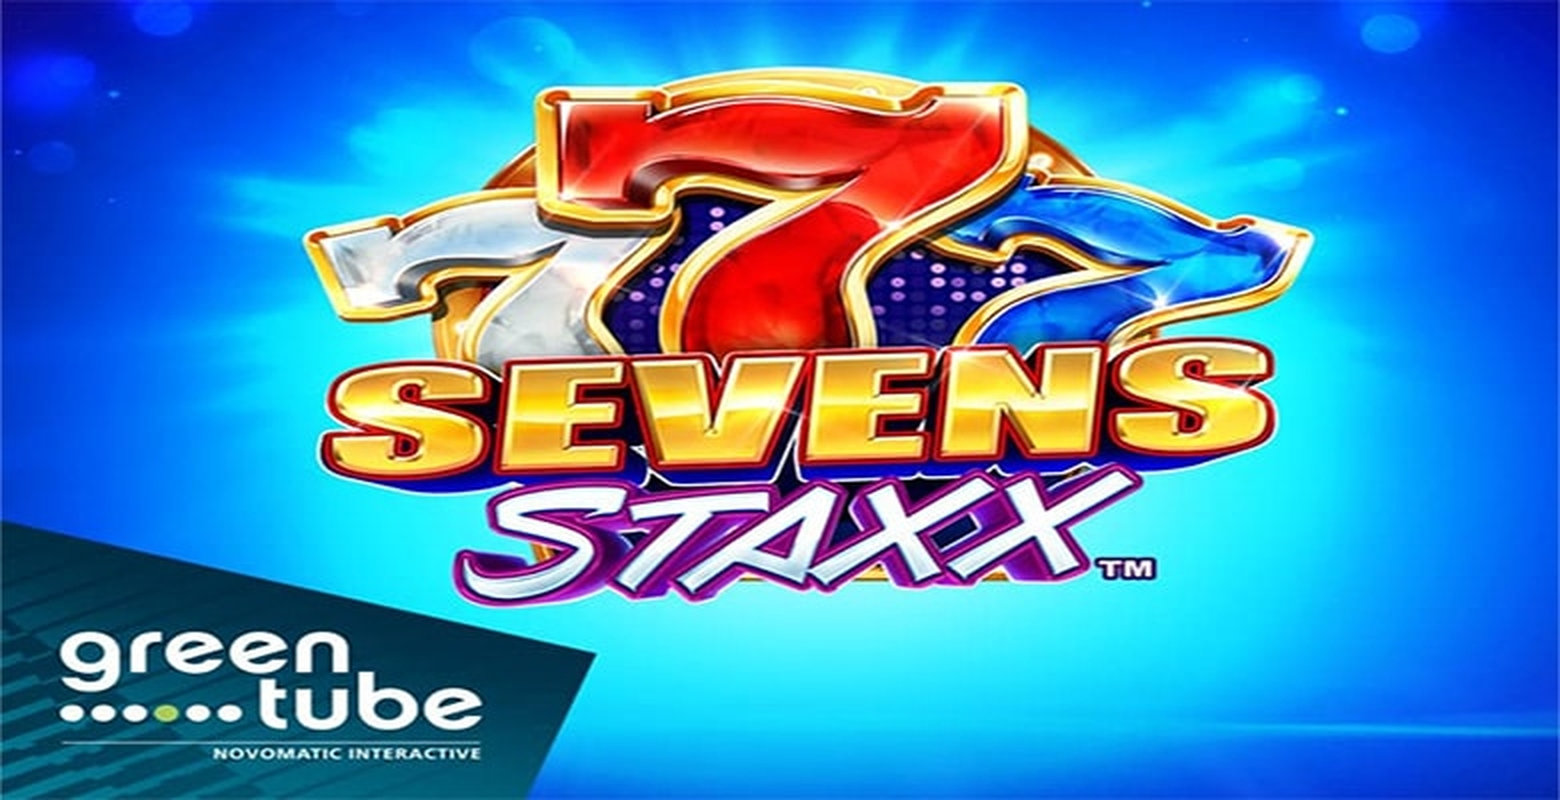 The Two Sevens Online Slot Demo Game by Greentube